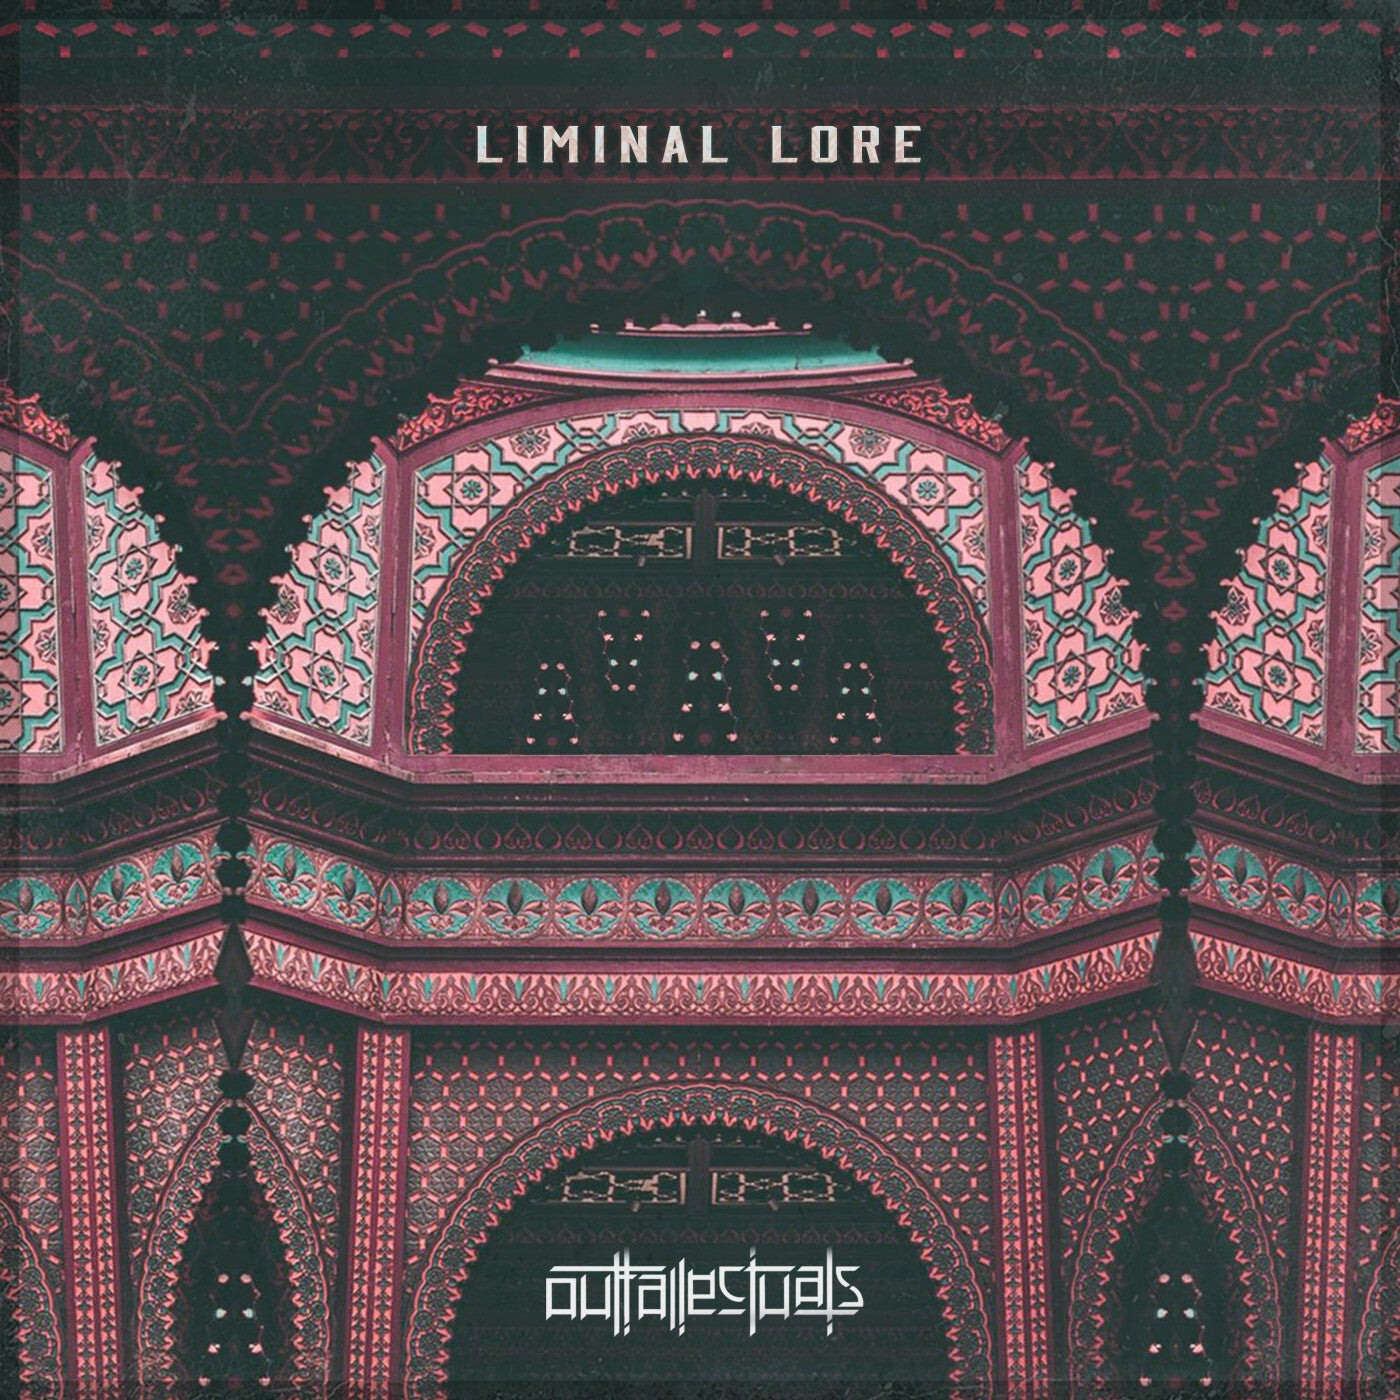 Outtallectuals - Liminal Lore (2021)